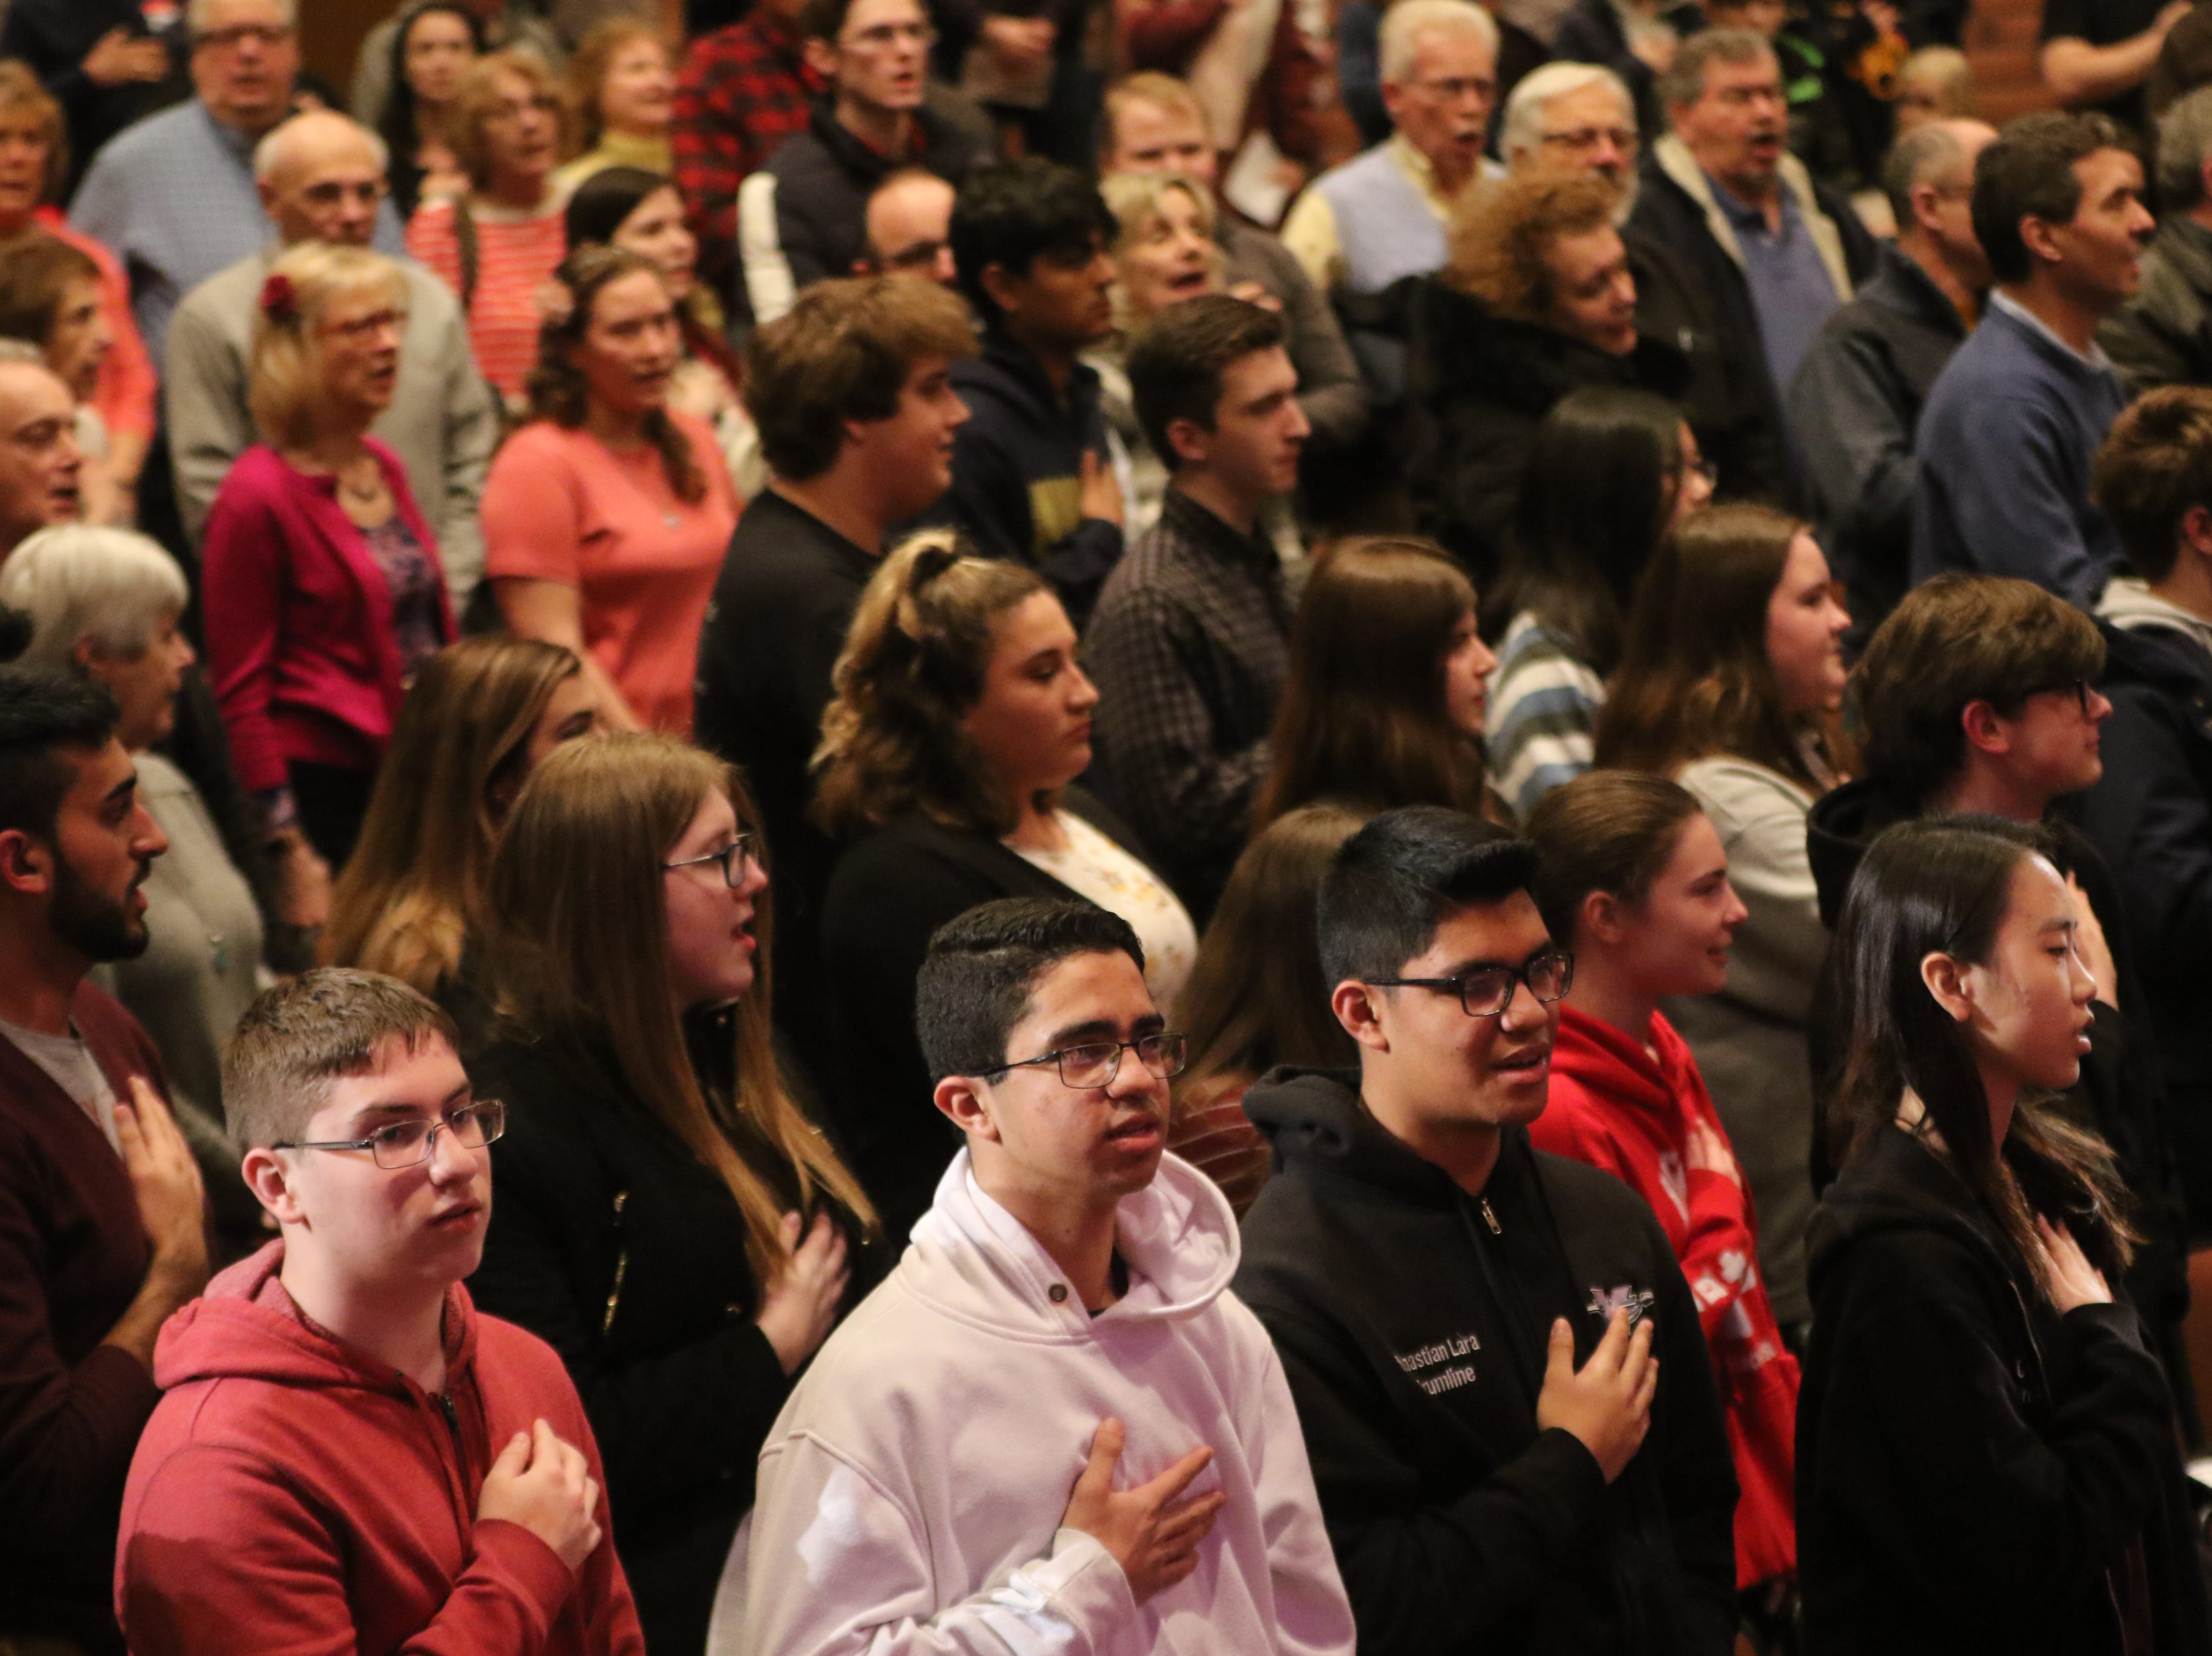 Concert-goers stand for 'The Star-Spangled Banner', in Wayne.  The United States Army Jazz Ambassadors Field Band performed at Wayne Hills High School, Thursday, March 21, 2019.  This was the eleventh day of their tour, which lasts more than a month.